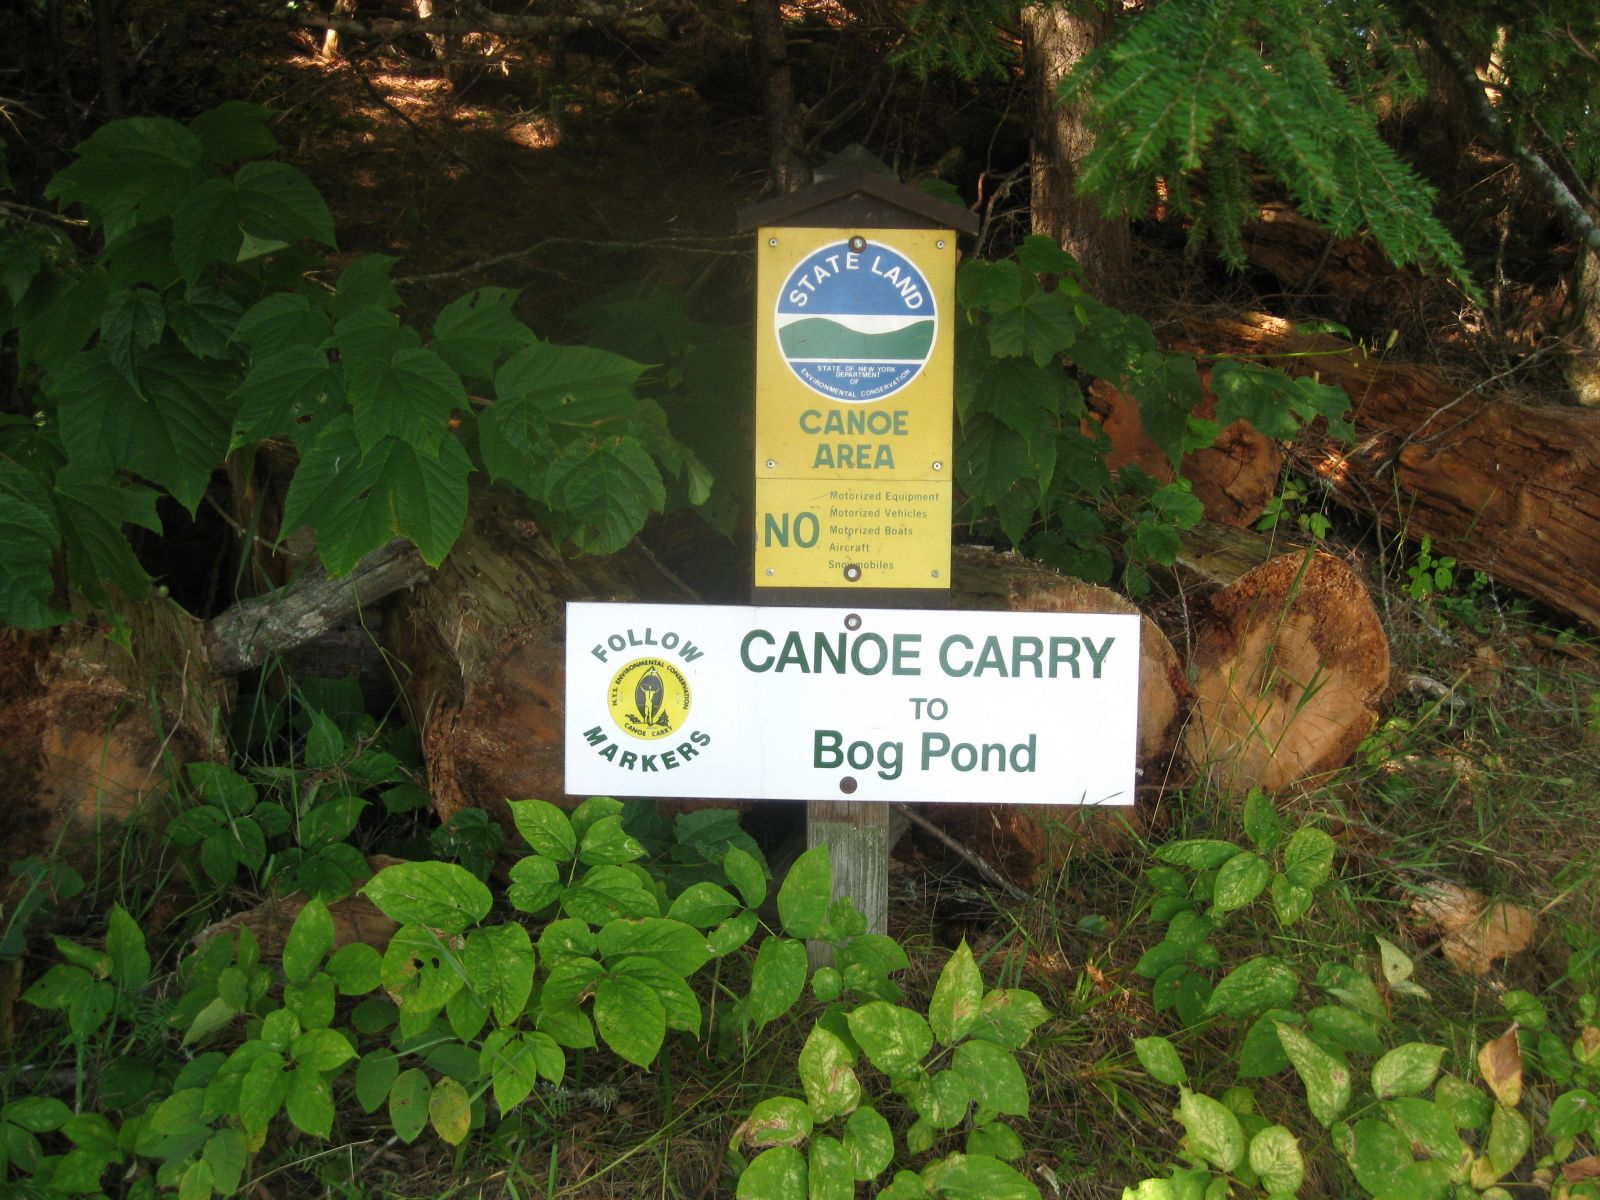 The portage sign for Bog Pond.